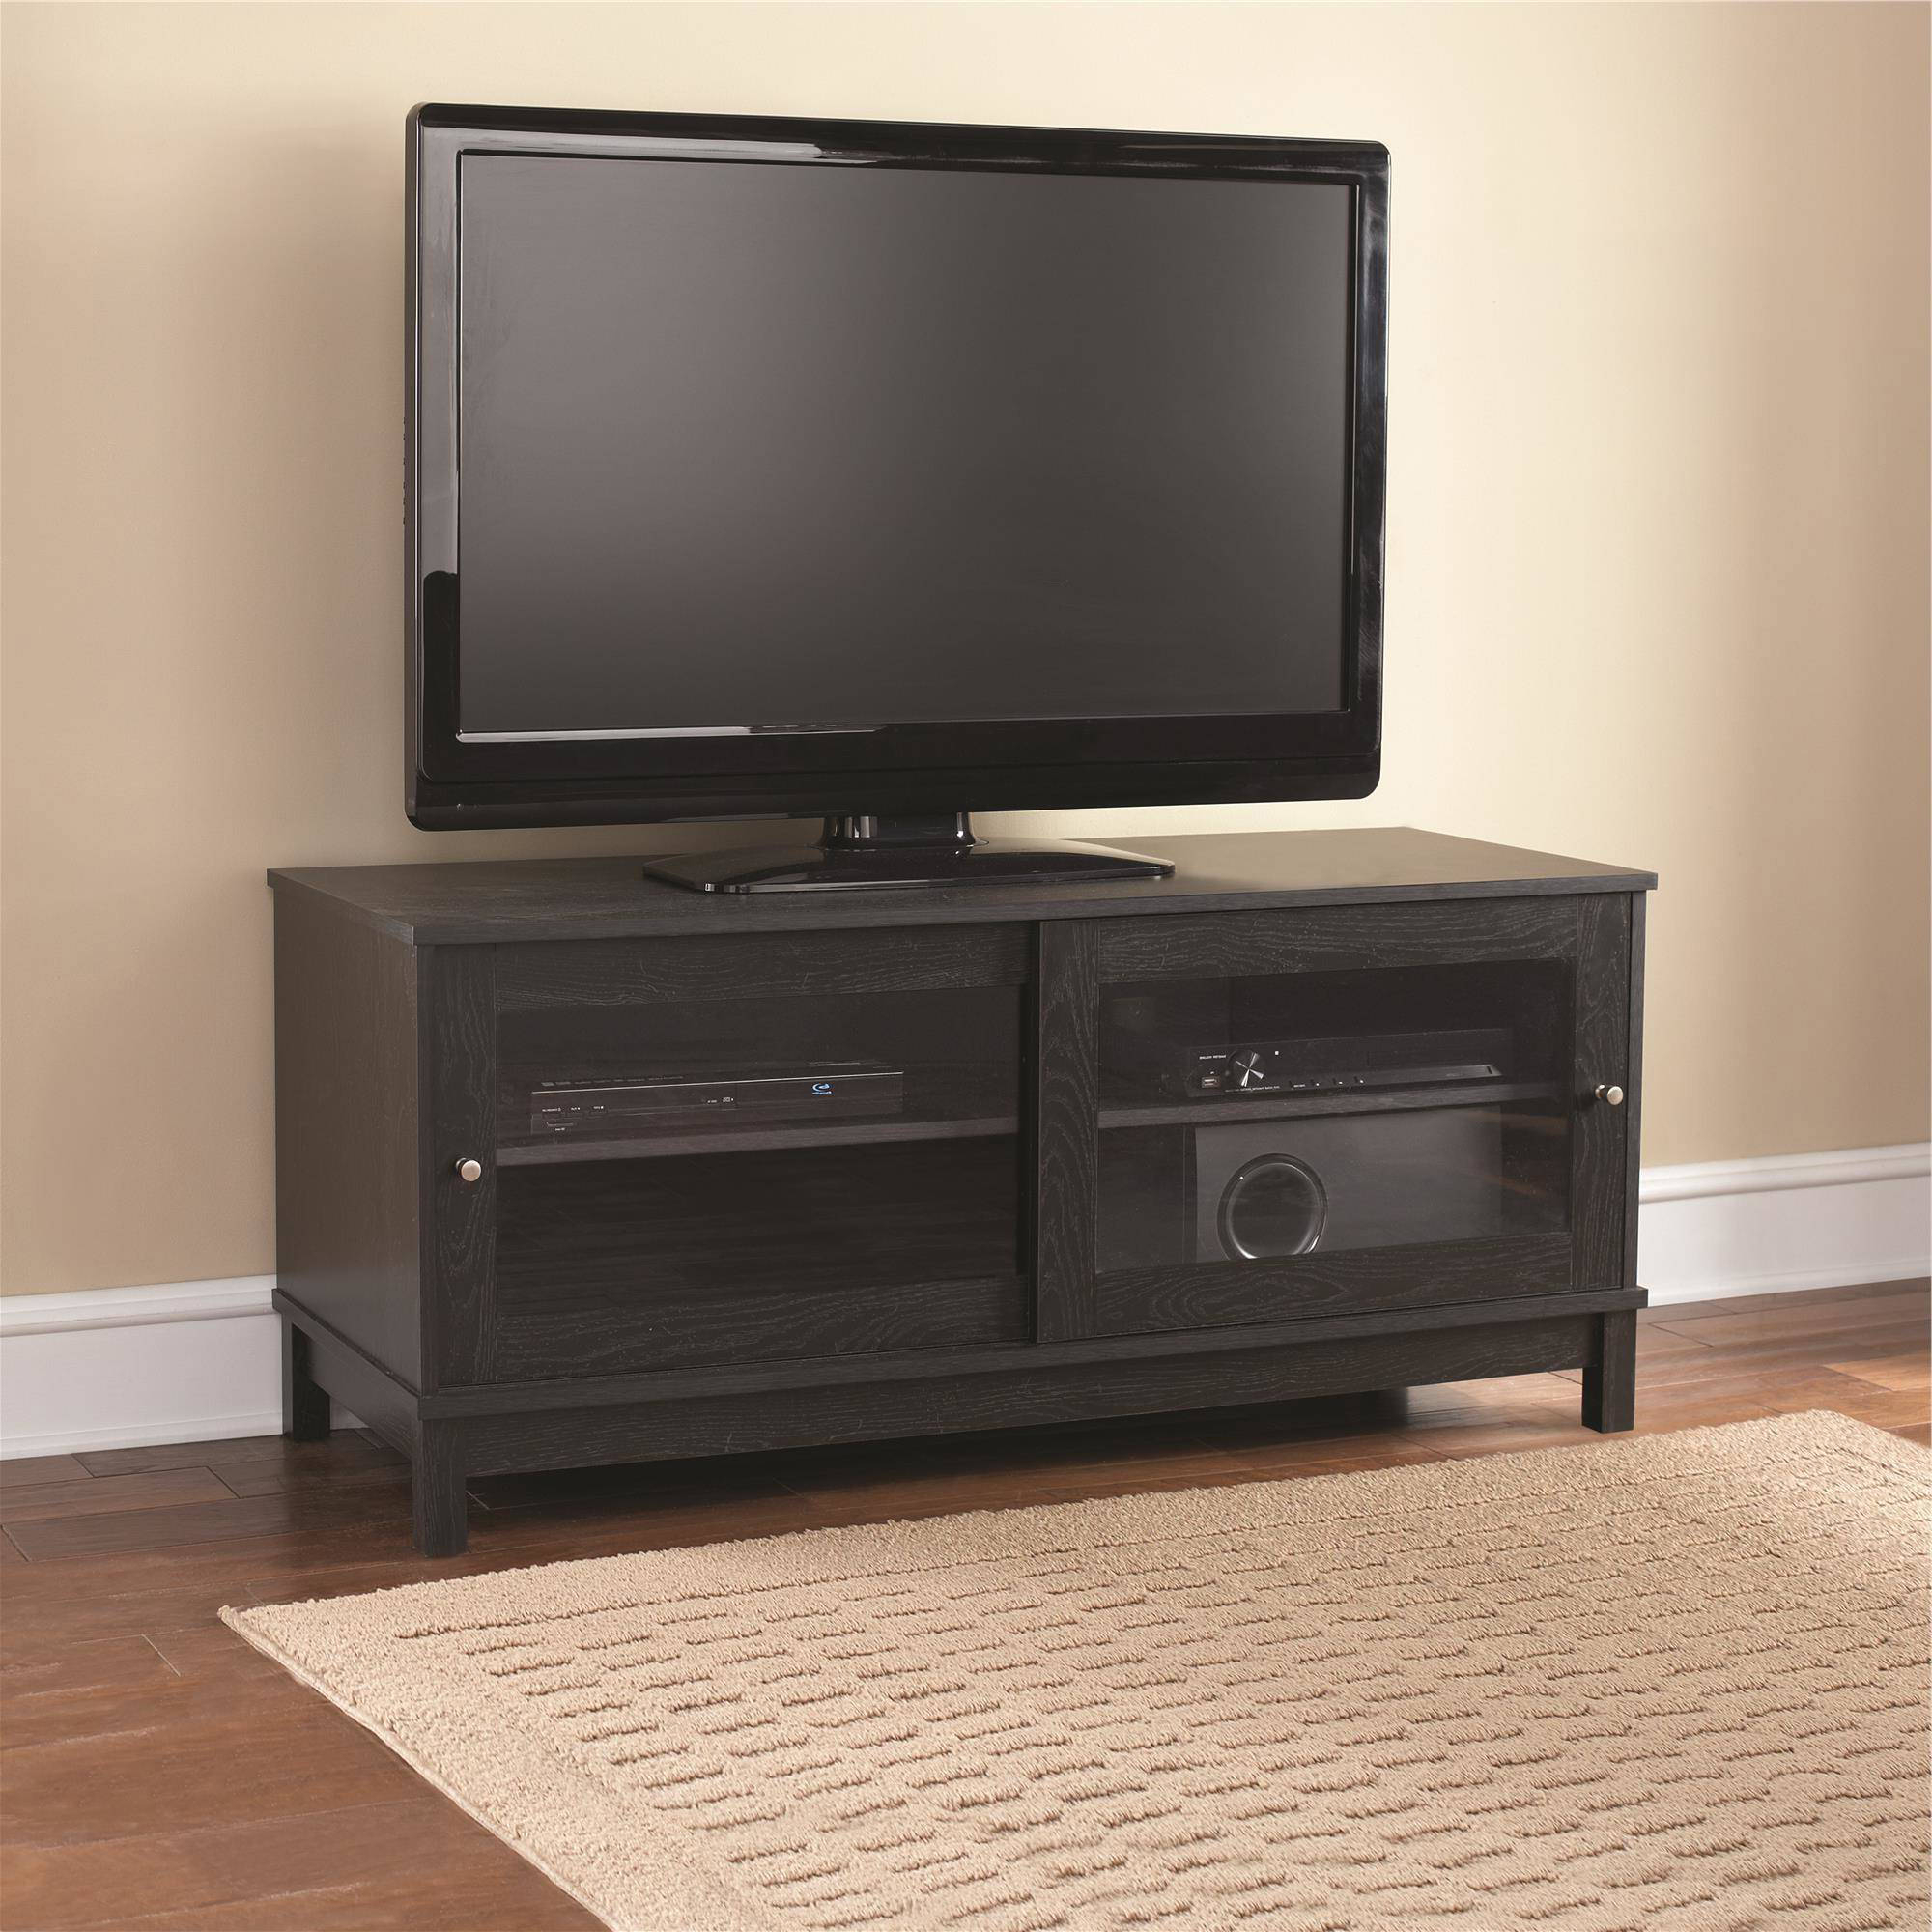 """Mainstays 55"""" Tv Stand With Sliding Glass Doors, Multiple Colors In Popular Wooden Tv Stands With Glass Doors (View 7 of 20)"""